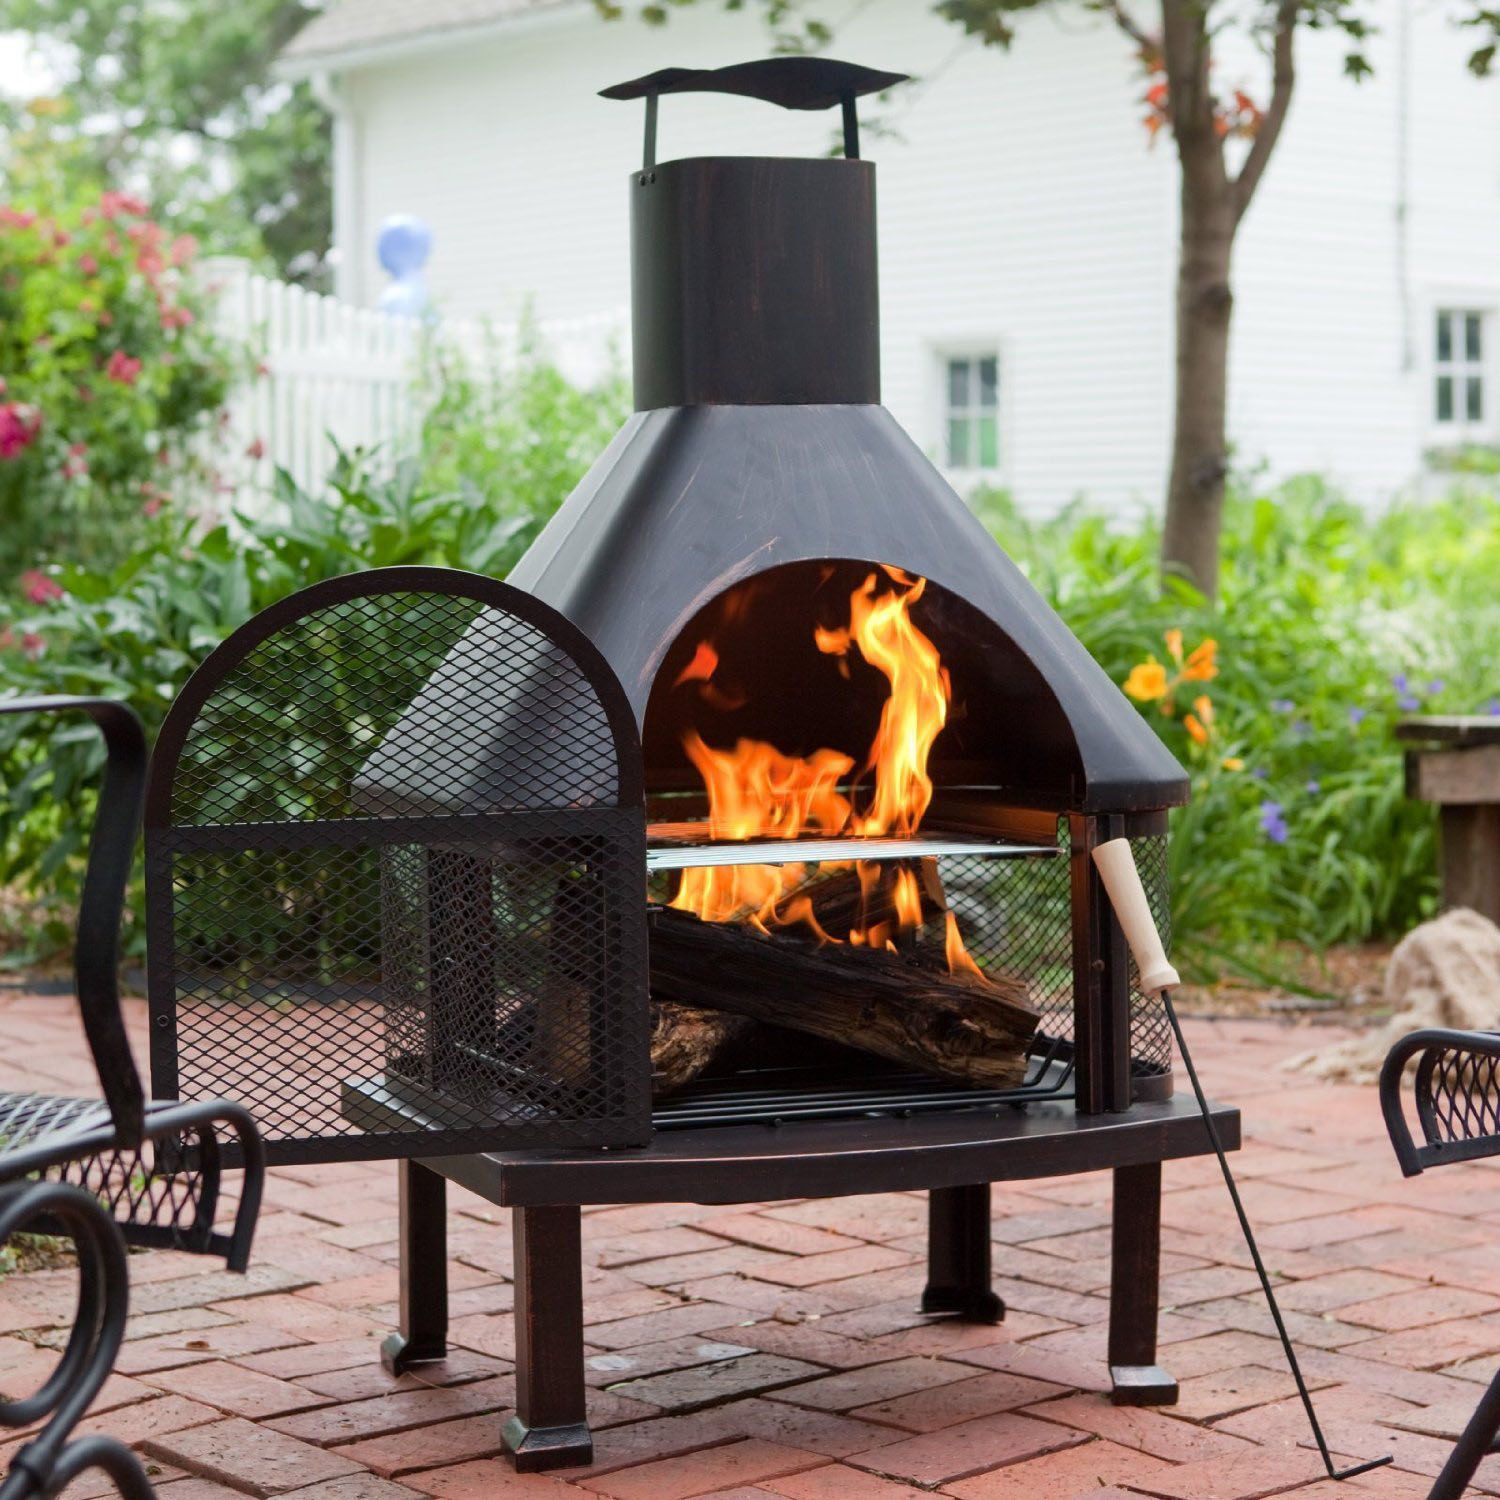 Outdoor Fire Pit Chimney Fireplace Design Ideas Fire Pit Chimney Outdoor Fireplace Patio Wood Burning Fire Pit